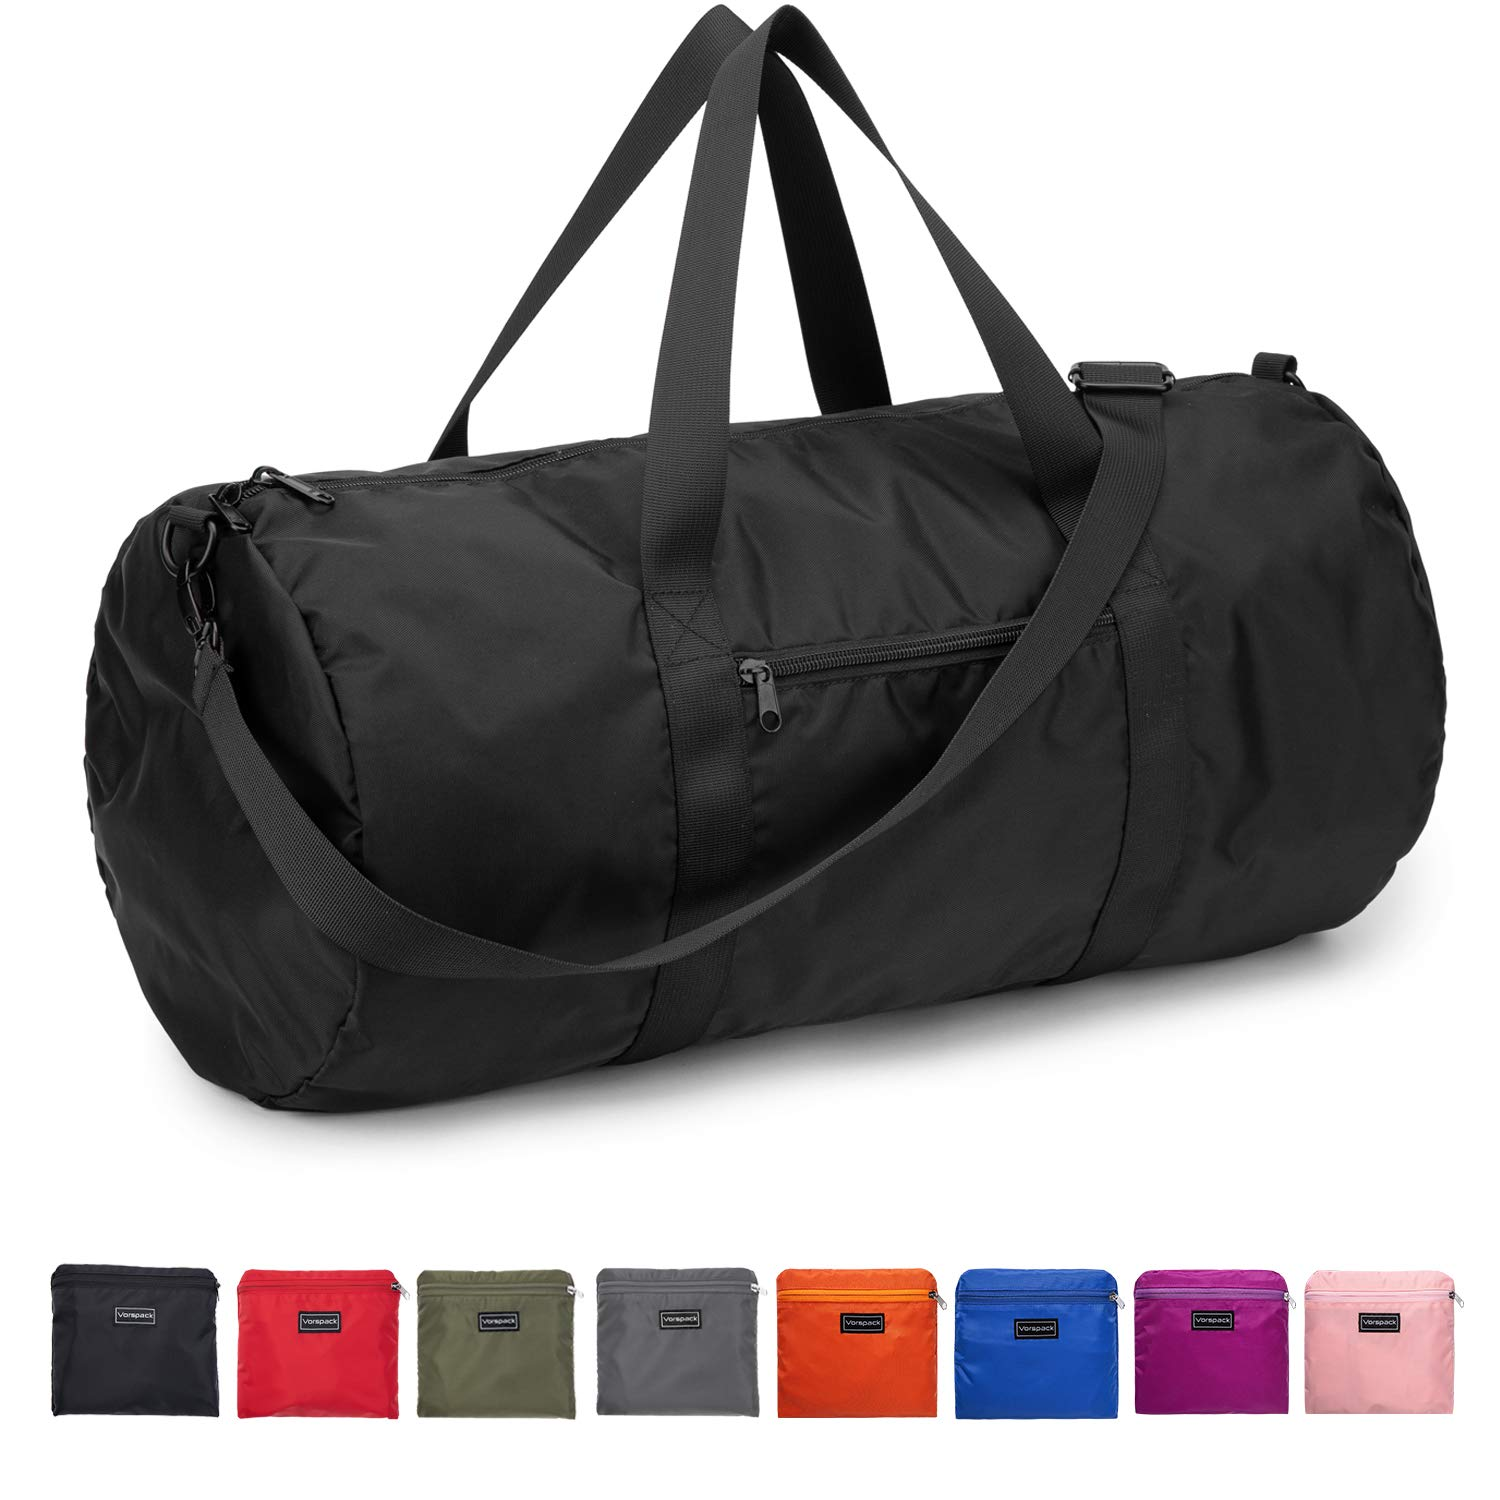 Duffel Bag 20-24-28 Inches Foldable Gym Bag for Men Women Duffle Bag Lightweight with Inner Pocket for Travel Sports